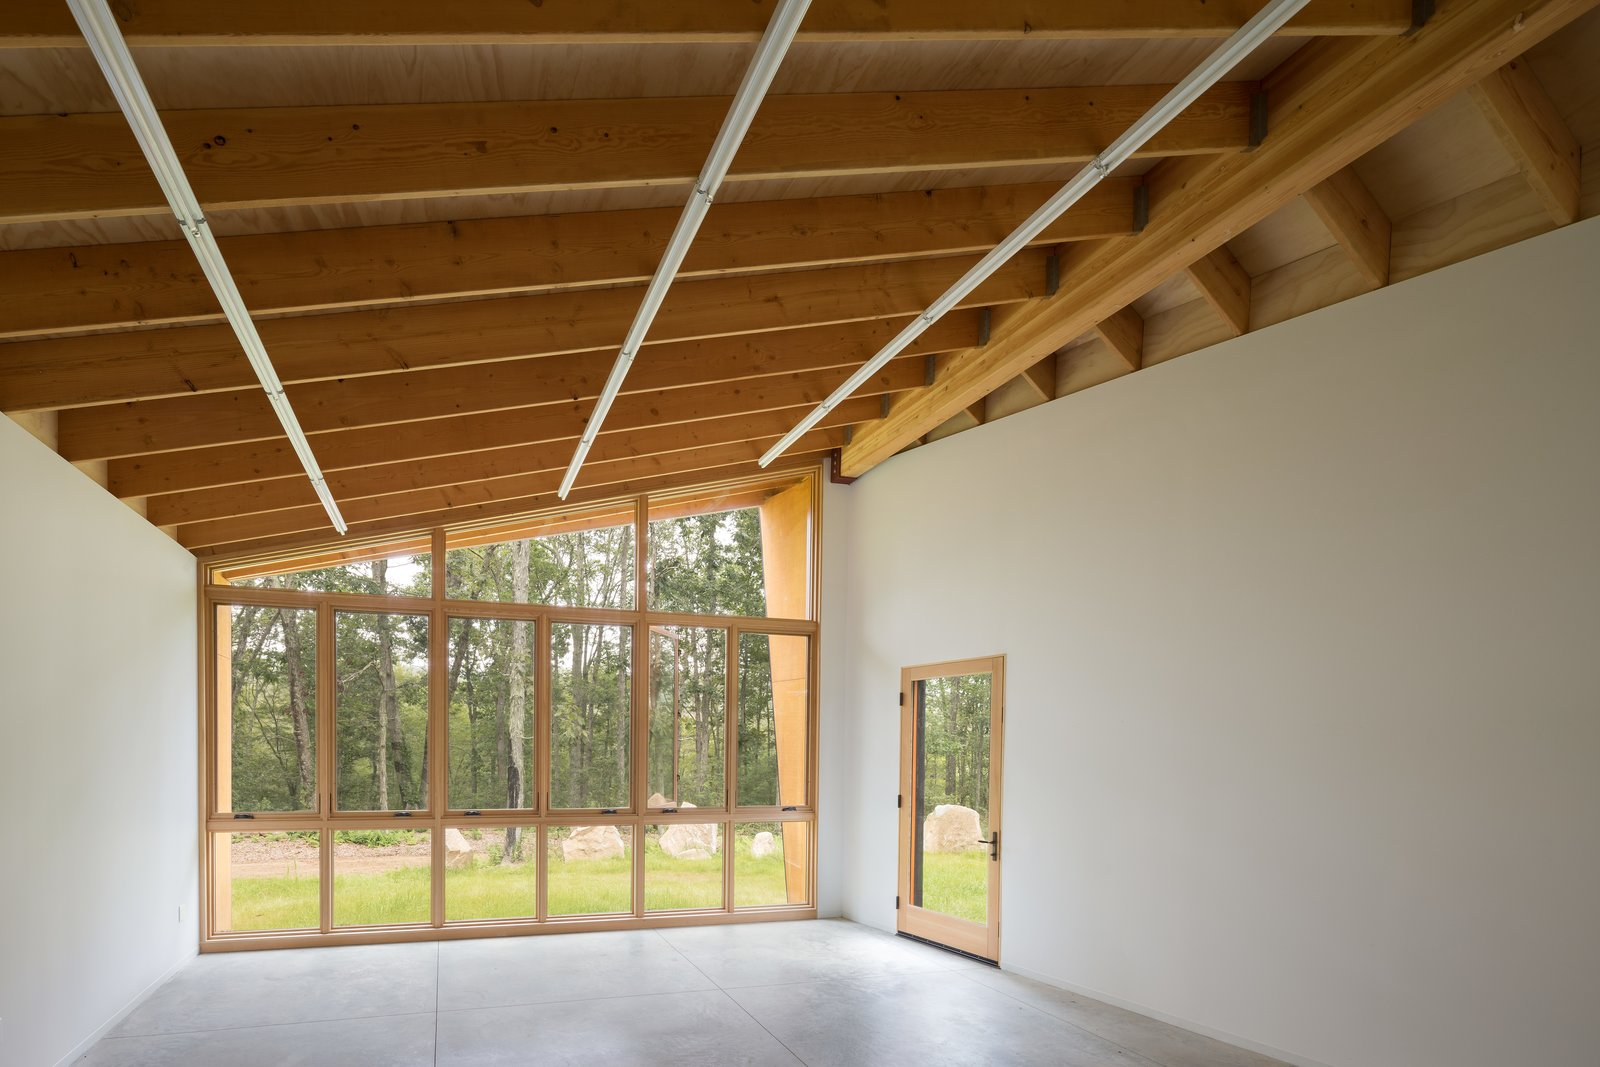 Inside, wall space is prioritized, with concealed plywood blocking to support hanging work.